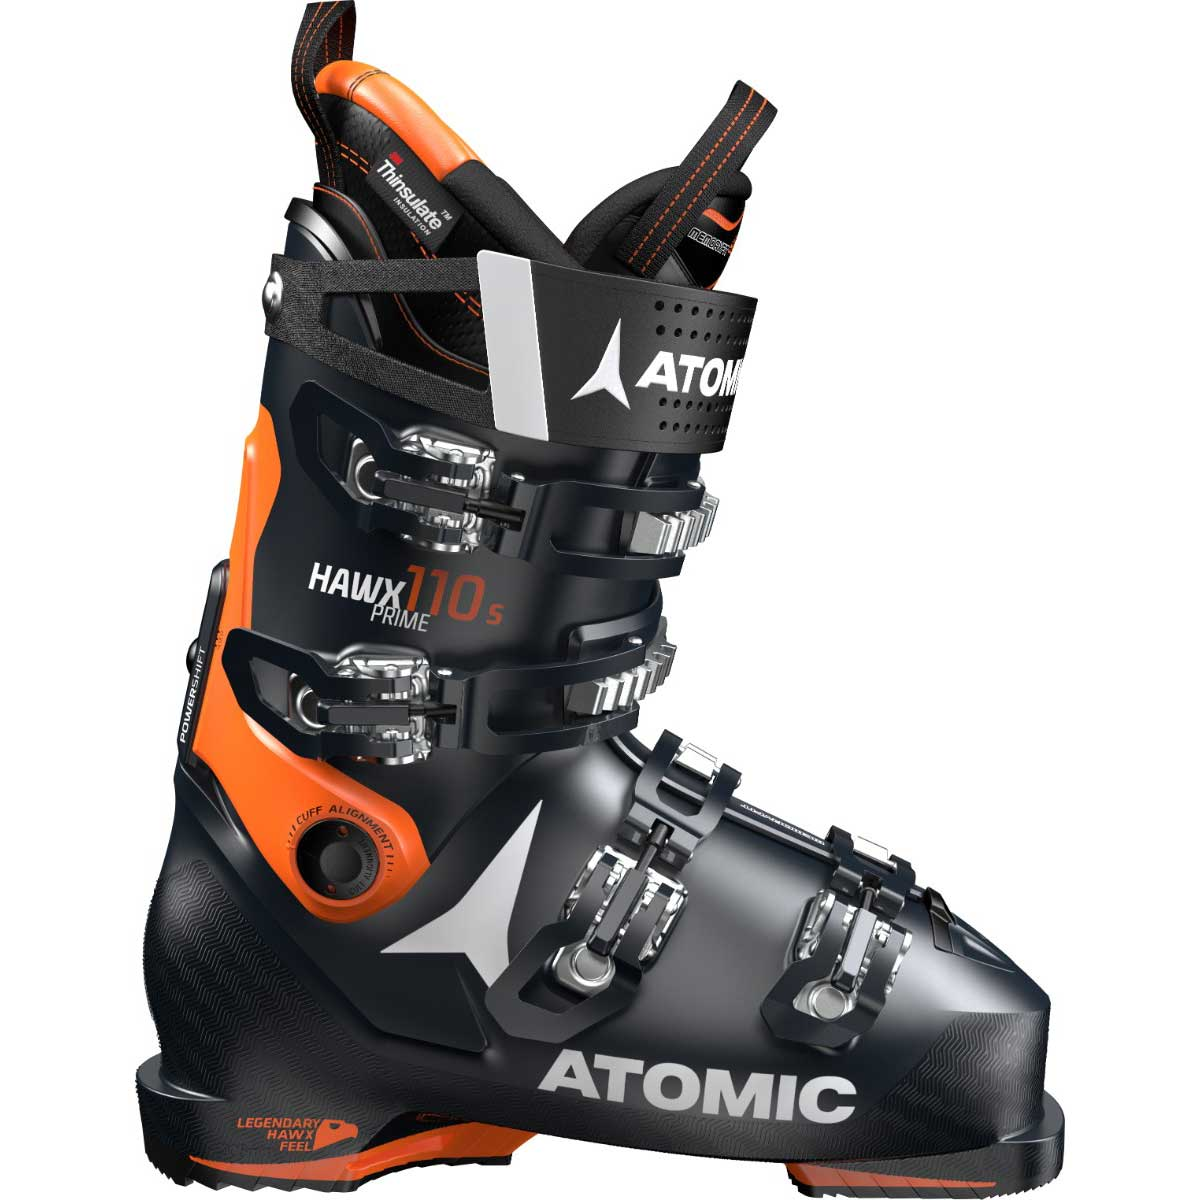 Atomic men's HAWX Prime 110 S ski boot in black and orange